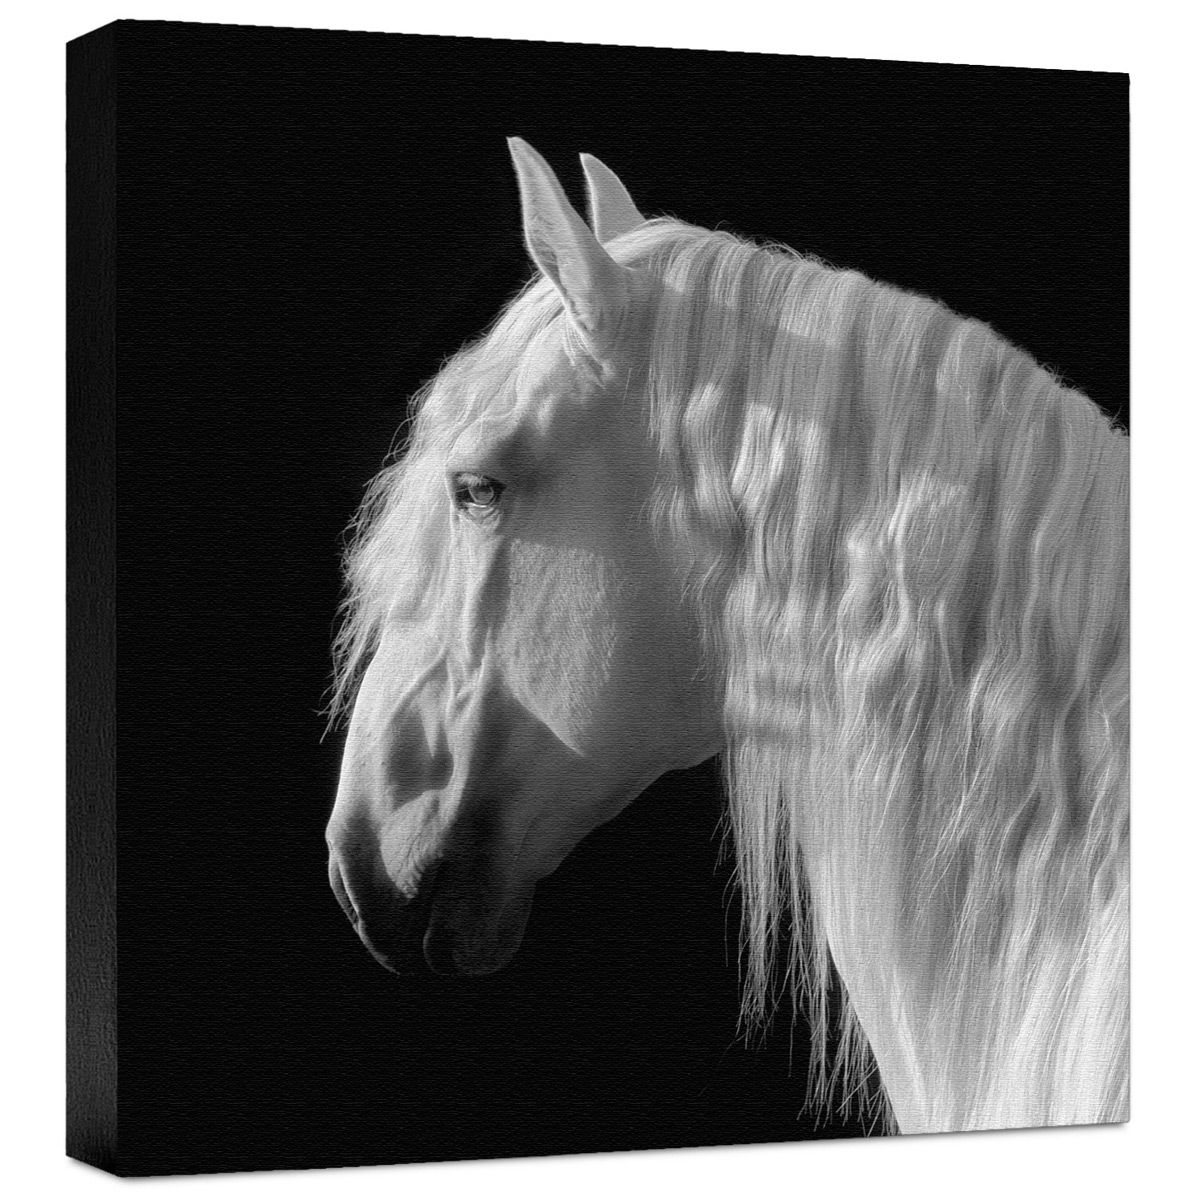 Contemplation Gallery Wrapped Canvas